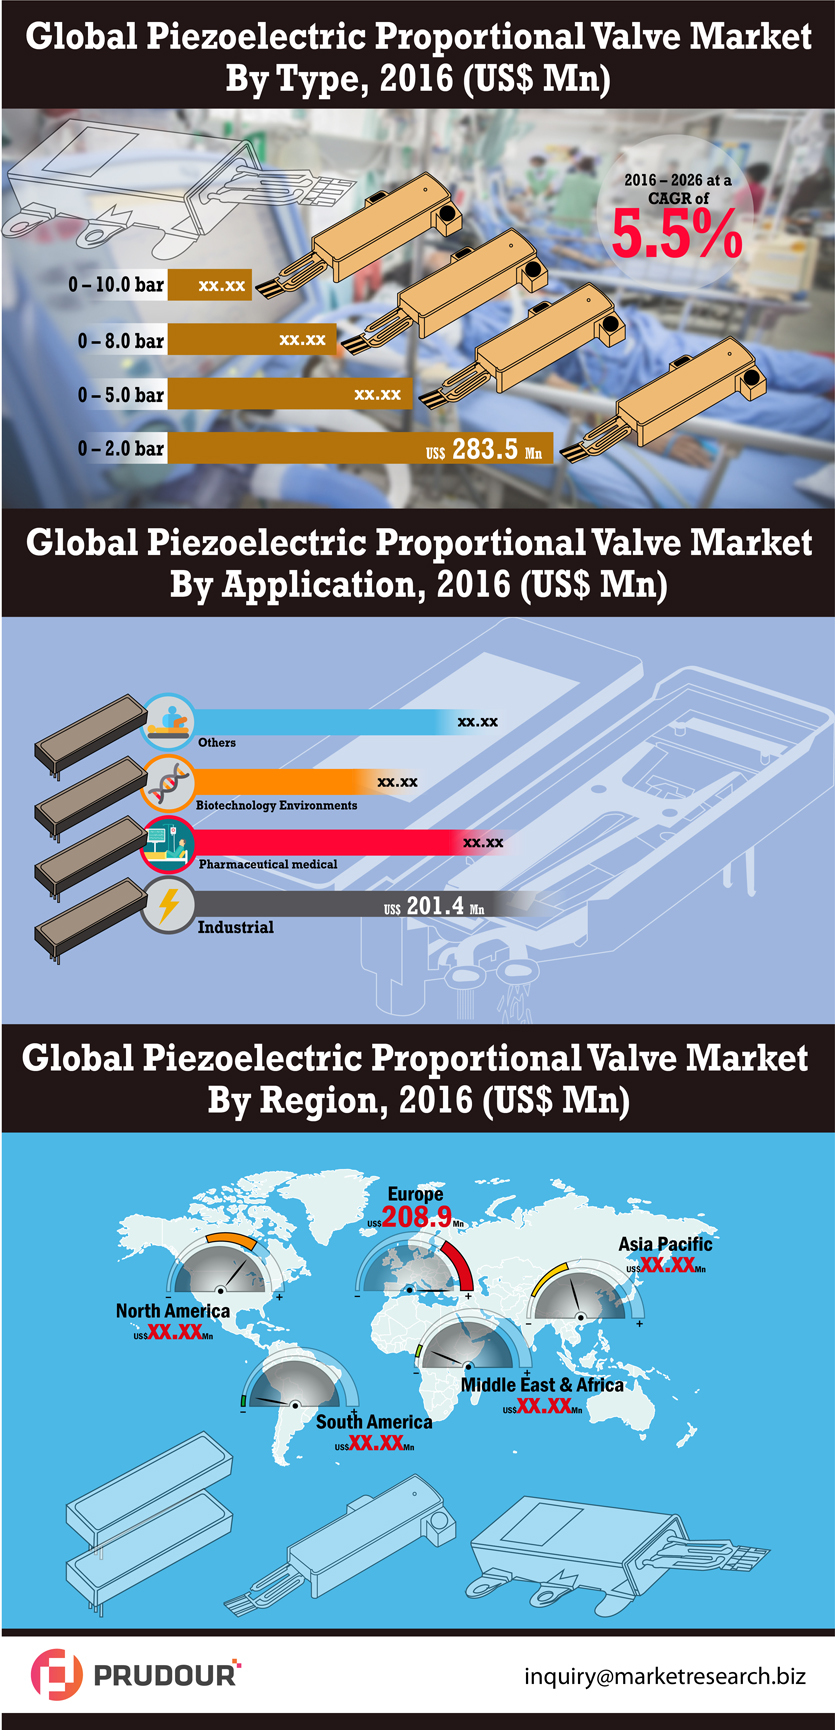 Global Piezoelectric Proportional Valve Market is Growing at US$ 1,107.1 Mn During 2017 to 2026